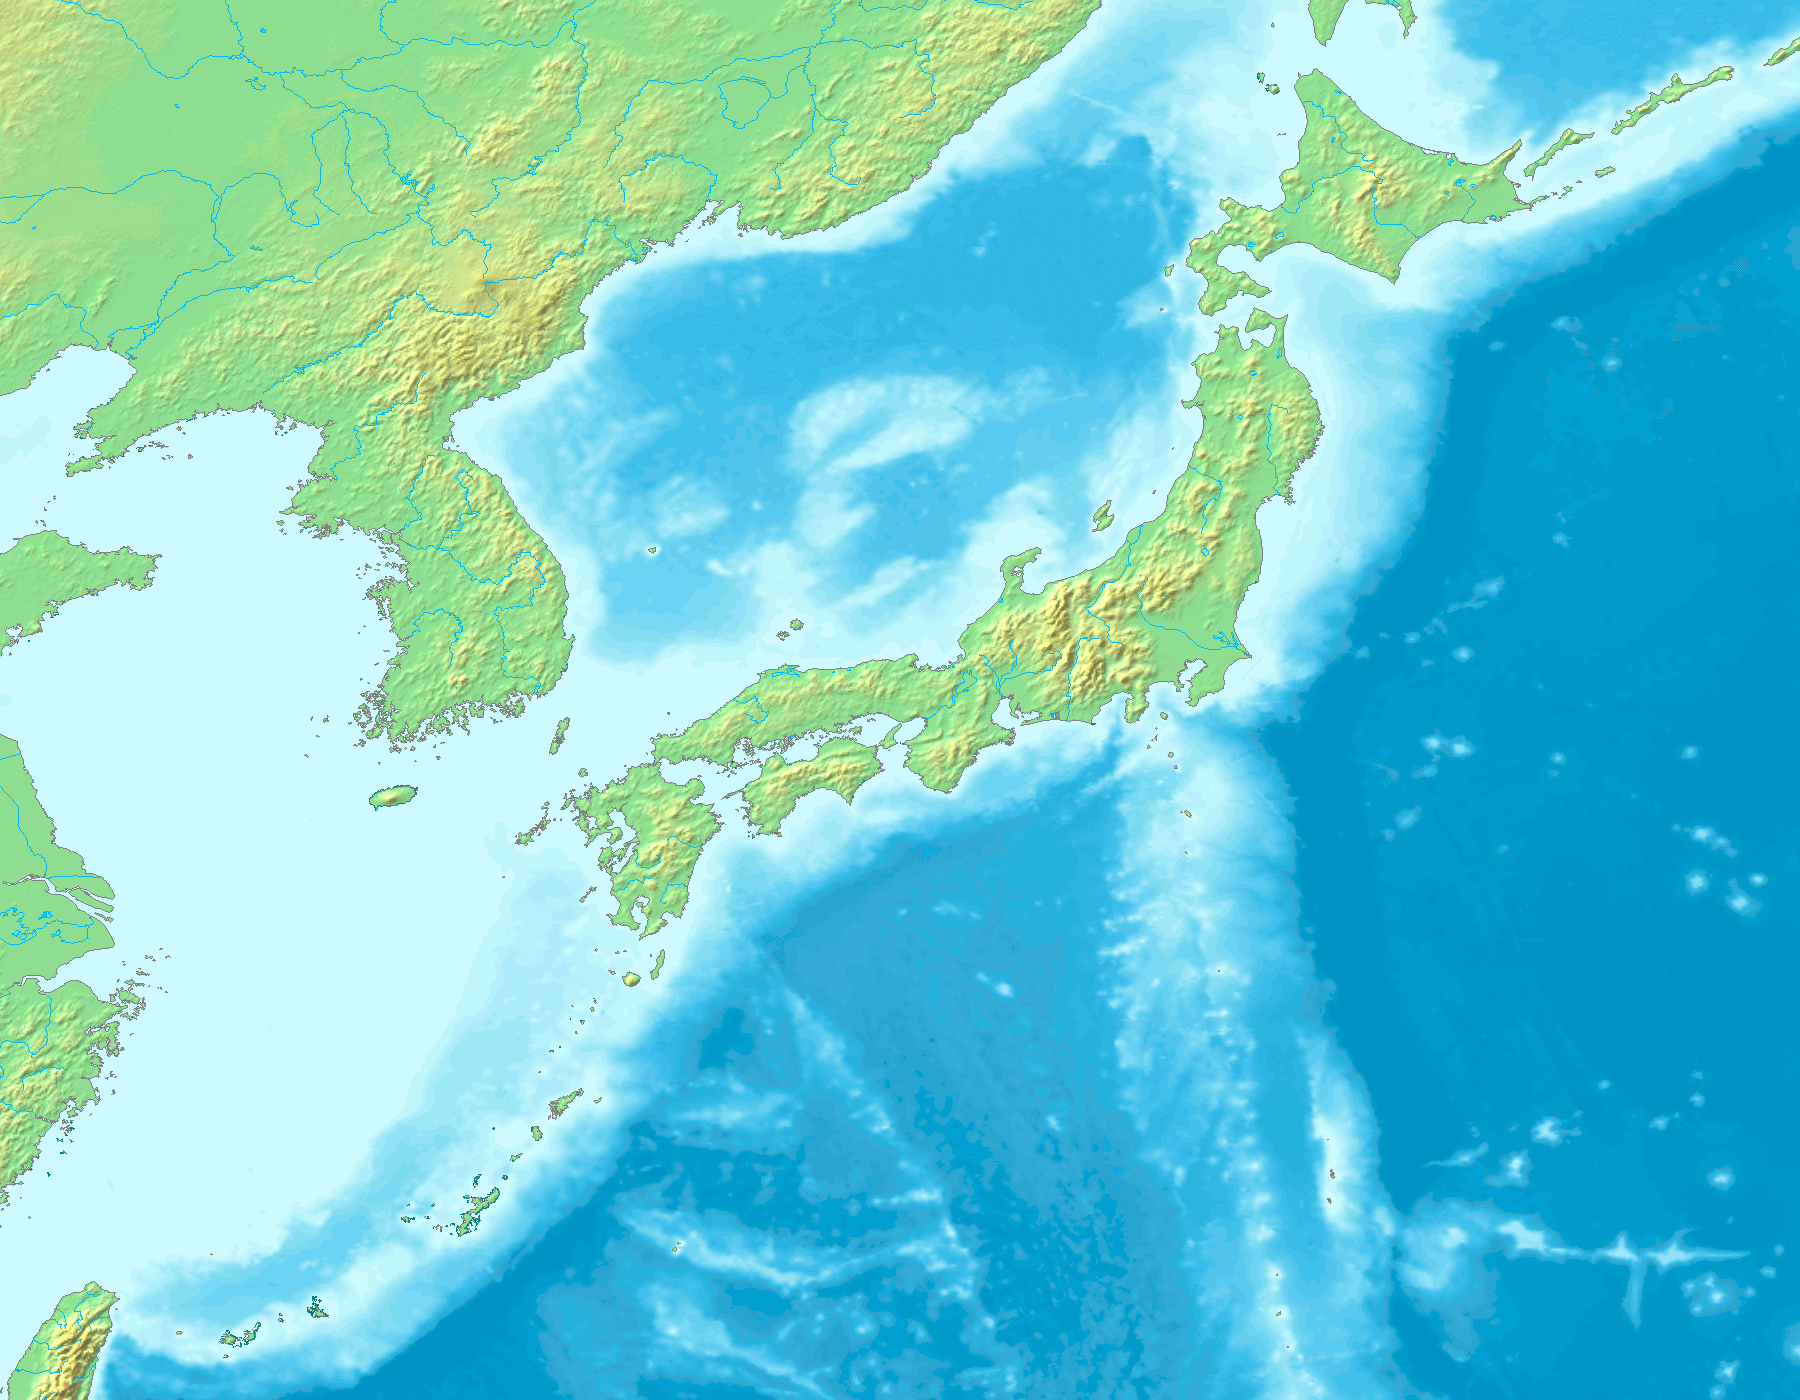 File:Topographic Map of Japan.png   Wikimedia Commons